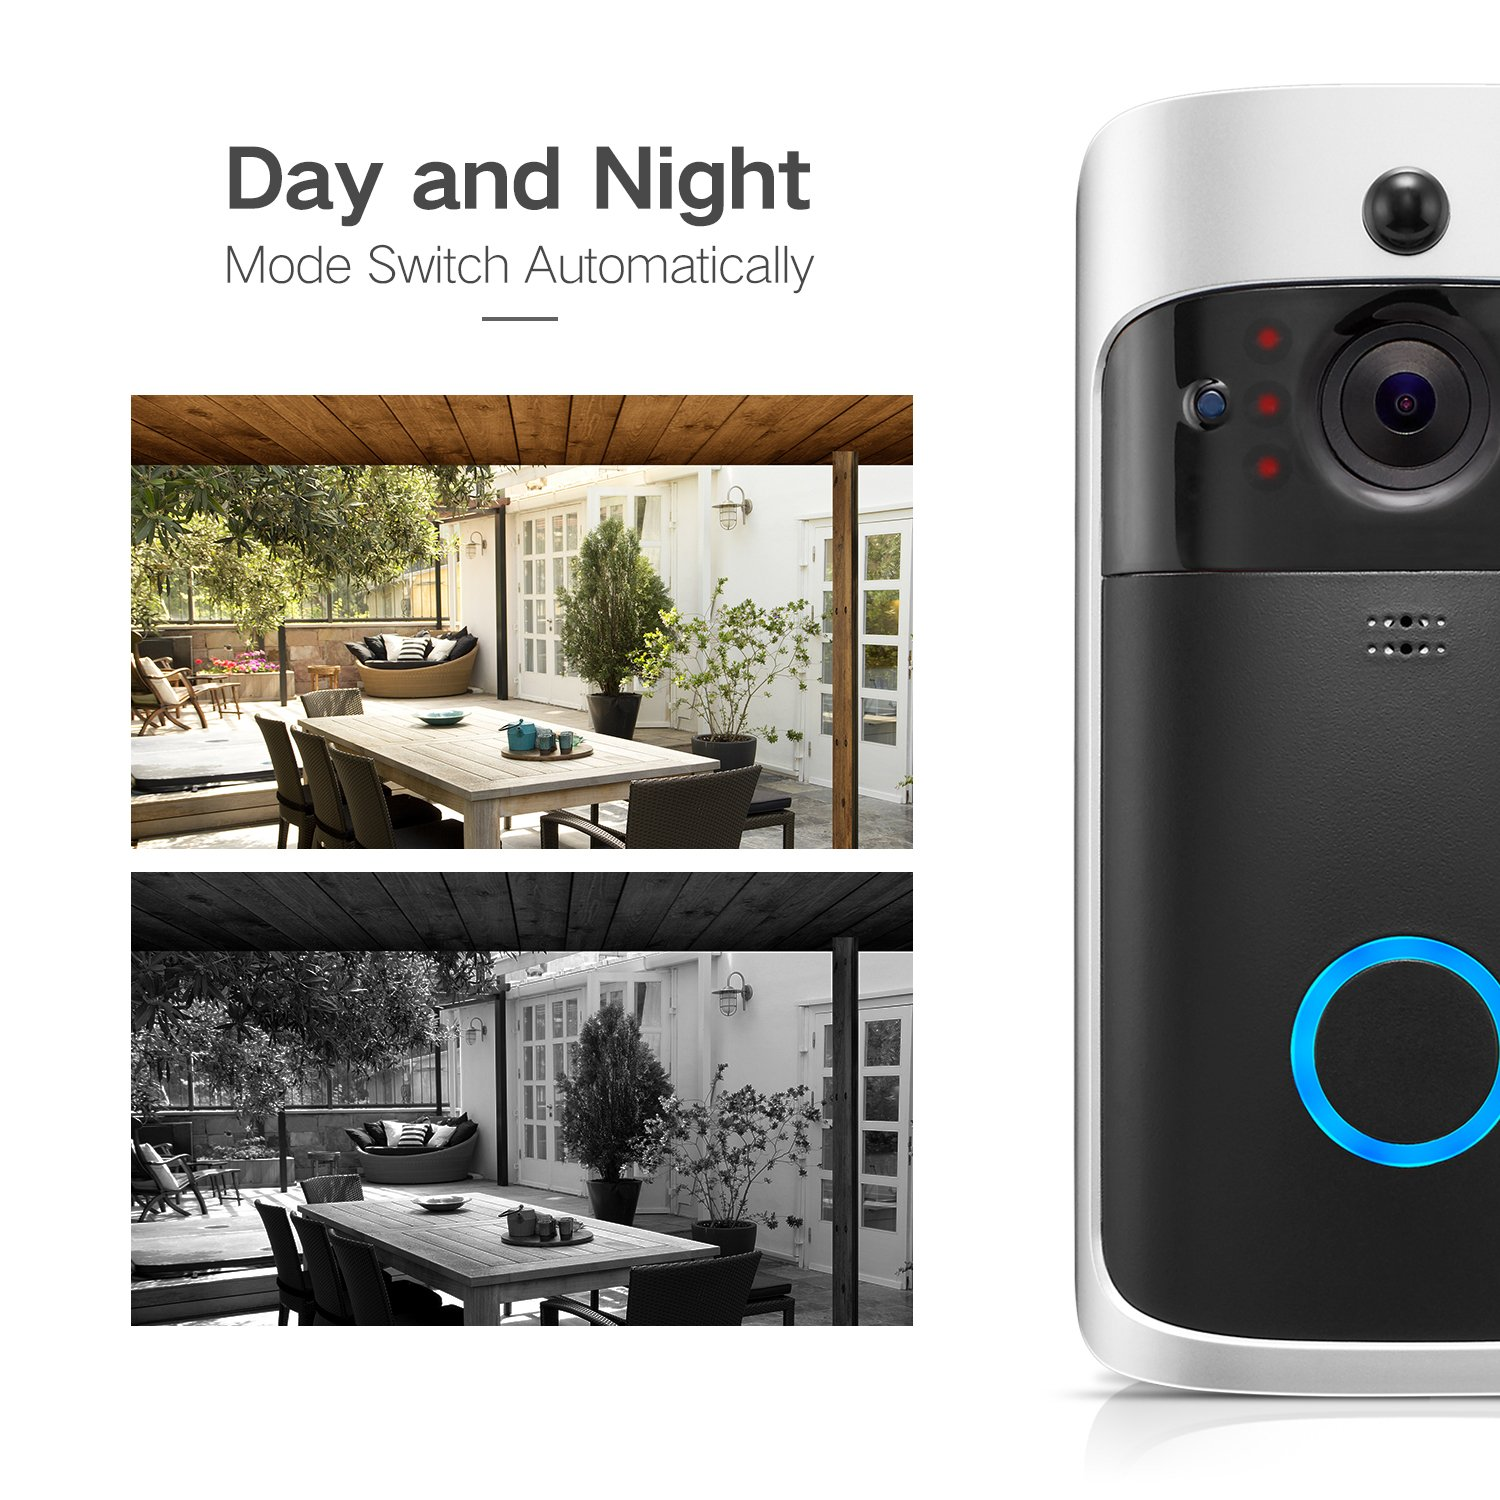 GJT Smart Video Doorbell Wireless Home WIFI Security Camera With Indoor Chime, 8G SD Card, Free Cloud Service, 2 Batteries, 2-Way Talk, Night Vision, PIR Motion Detection, APP Control for IOS Android by GJT (Image #4)